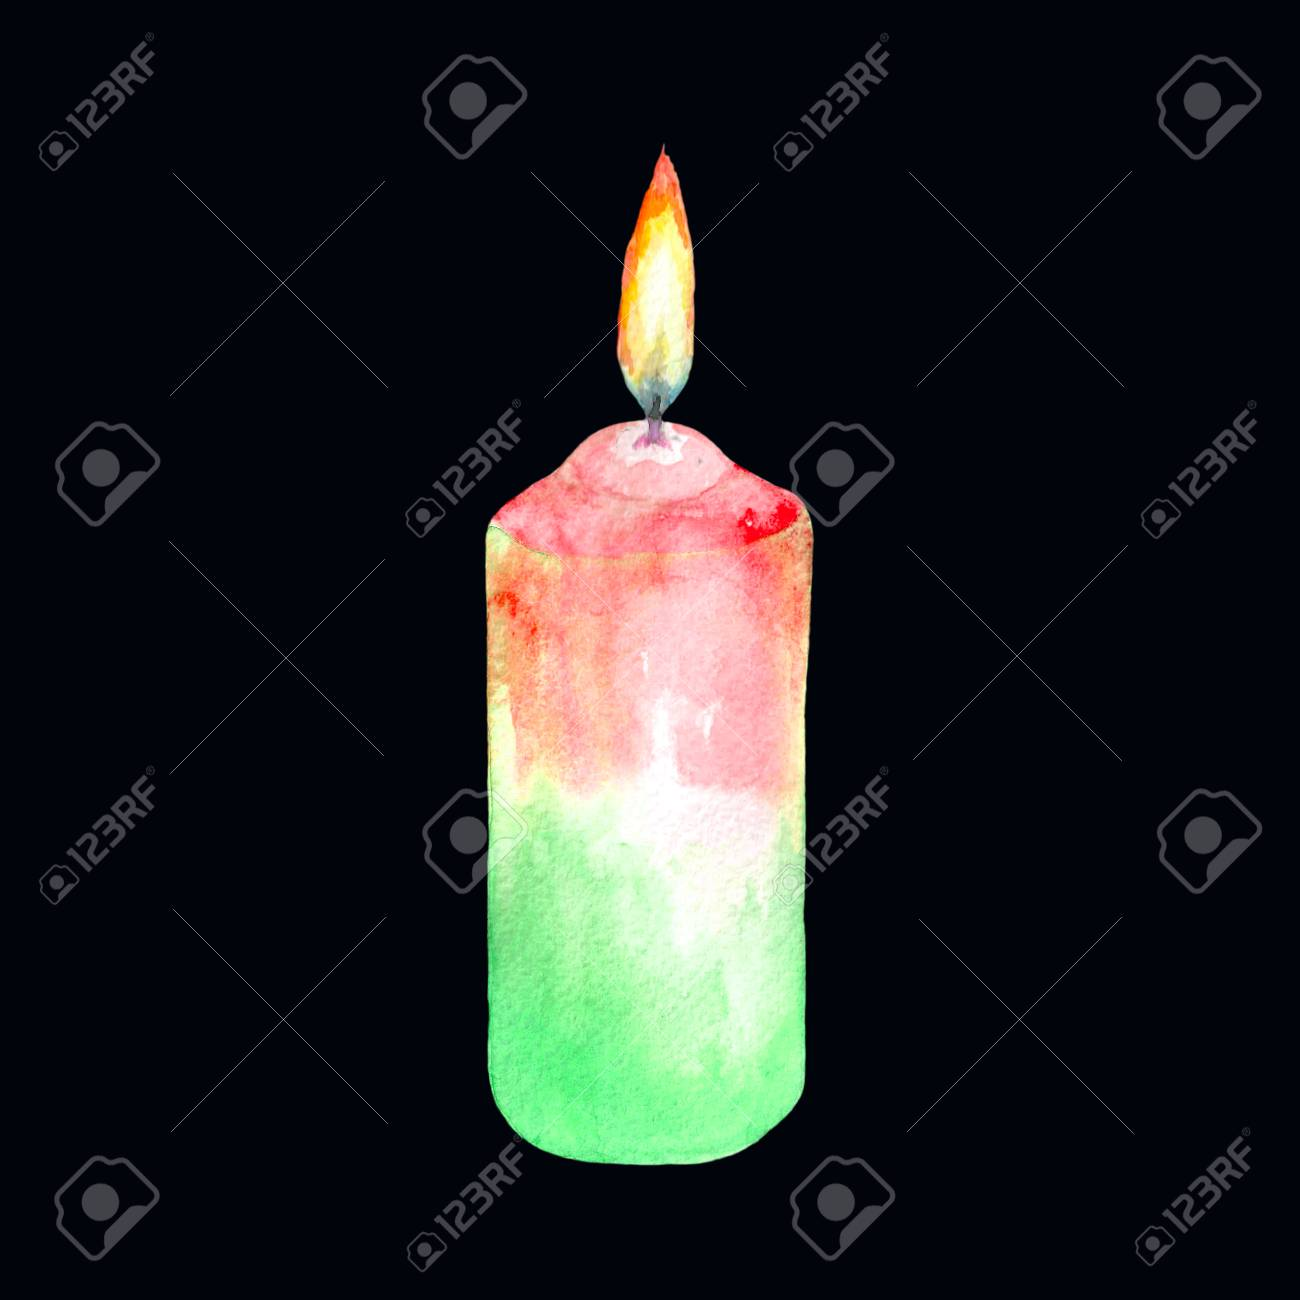 Watercolor Illustration Of A Lit Candle Red-green Color. Isolated ... for Candle Drawing With Color  29jwn